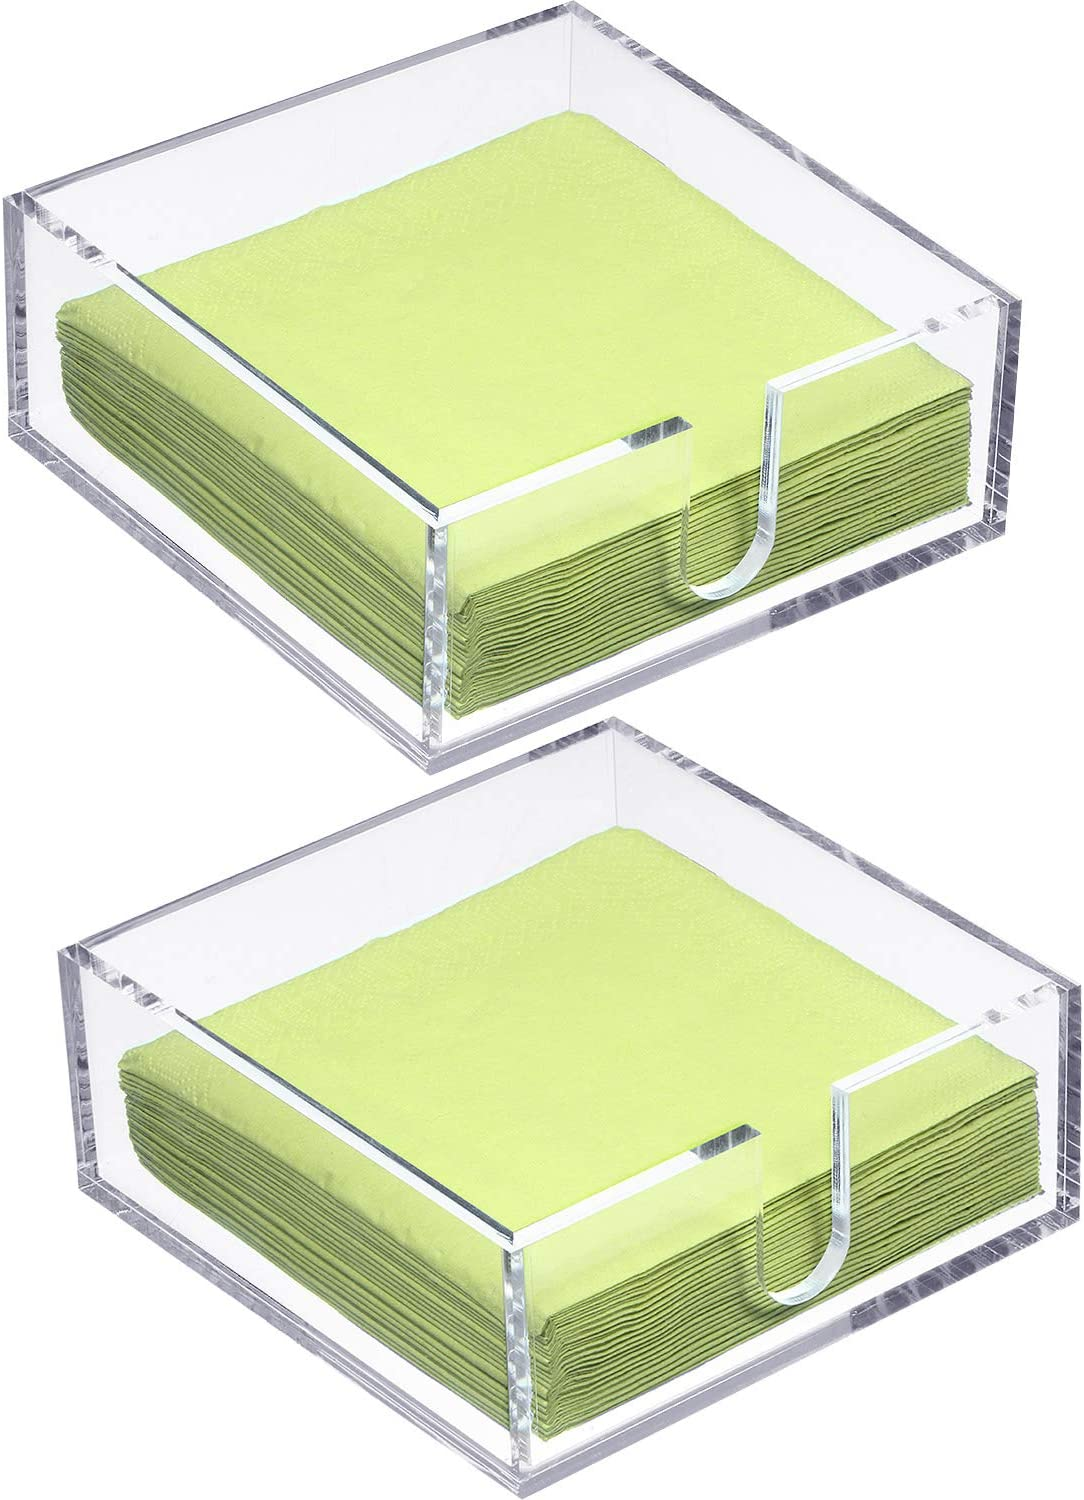 2 Pieces Acrylic Cocktail Napkin Holder, Clear Napkin Holder Square Rectangle Napkin Holder for Lunch Dinner Guest, Kitchen, Bathroom, Restaurant, Office, 5 mm Thickness (5.5 x 5.5 Inch)